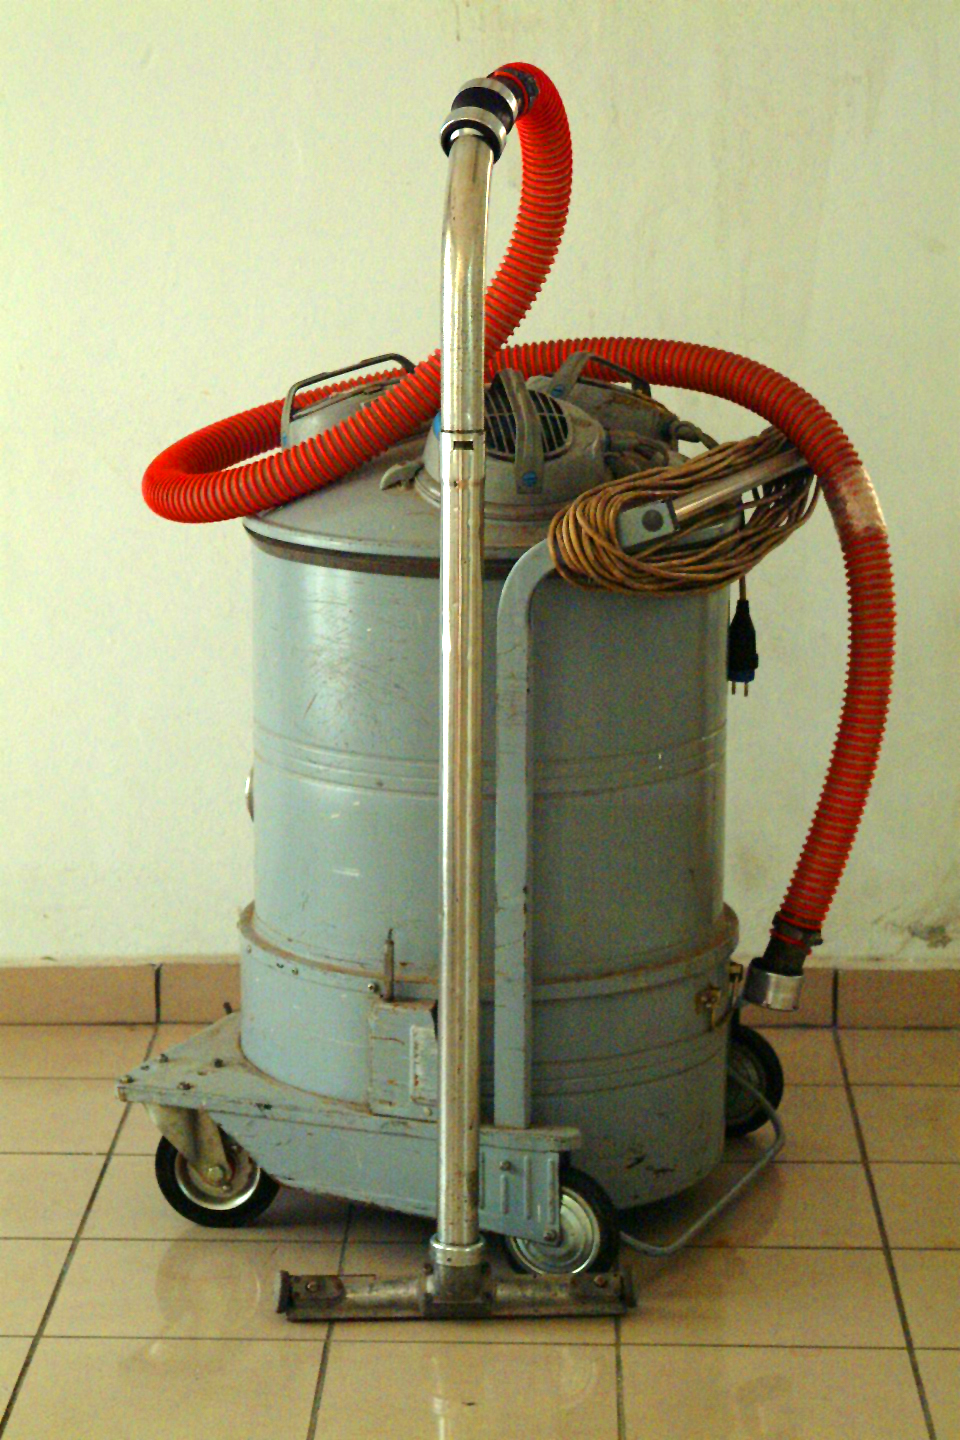 Vacuum Cleaners and Financial Services